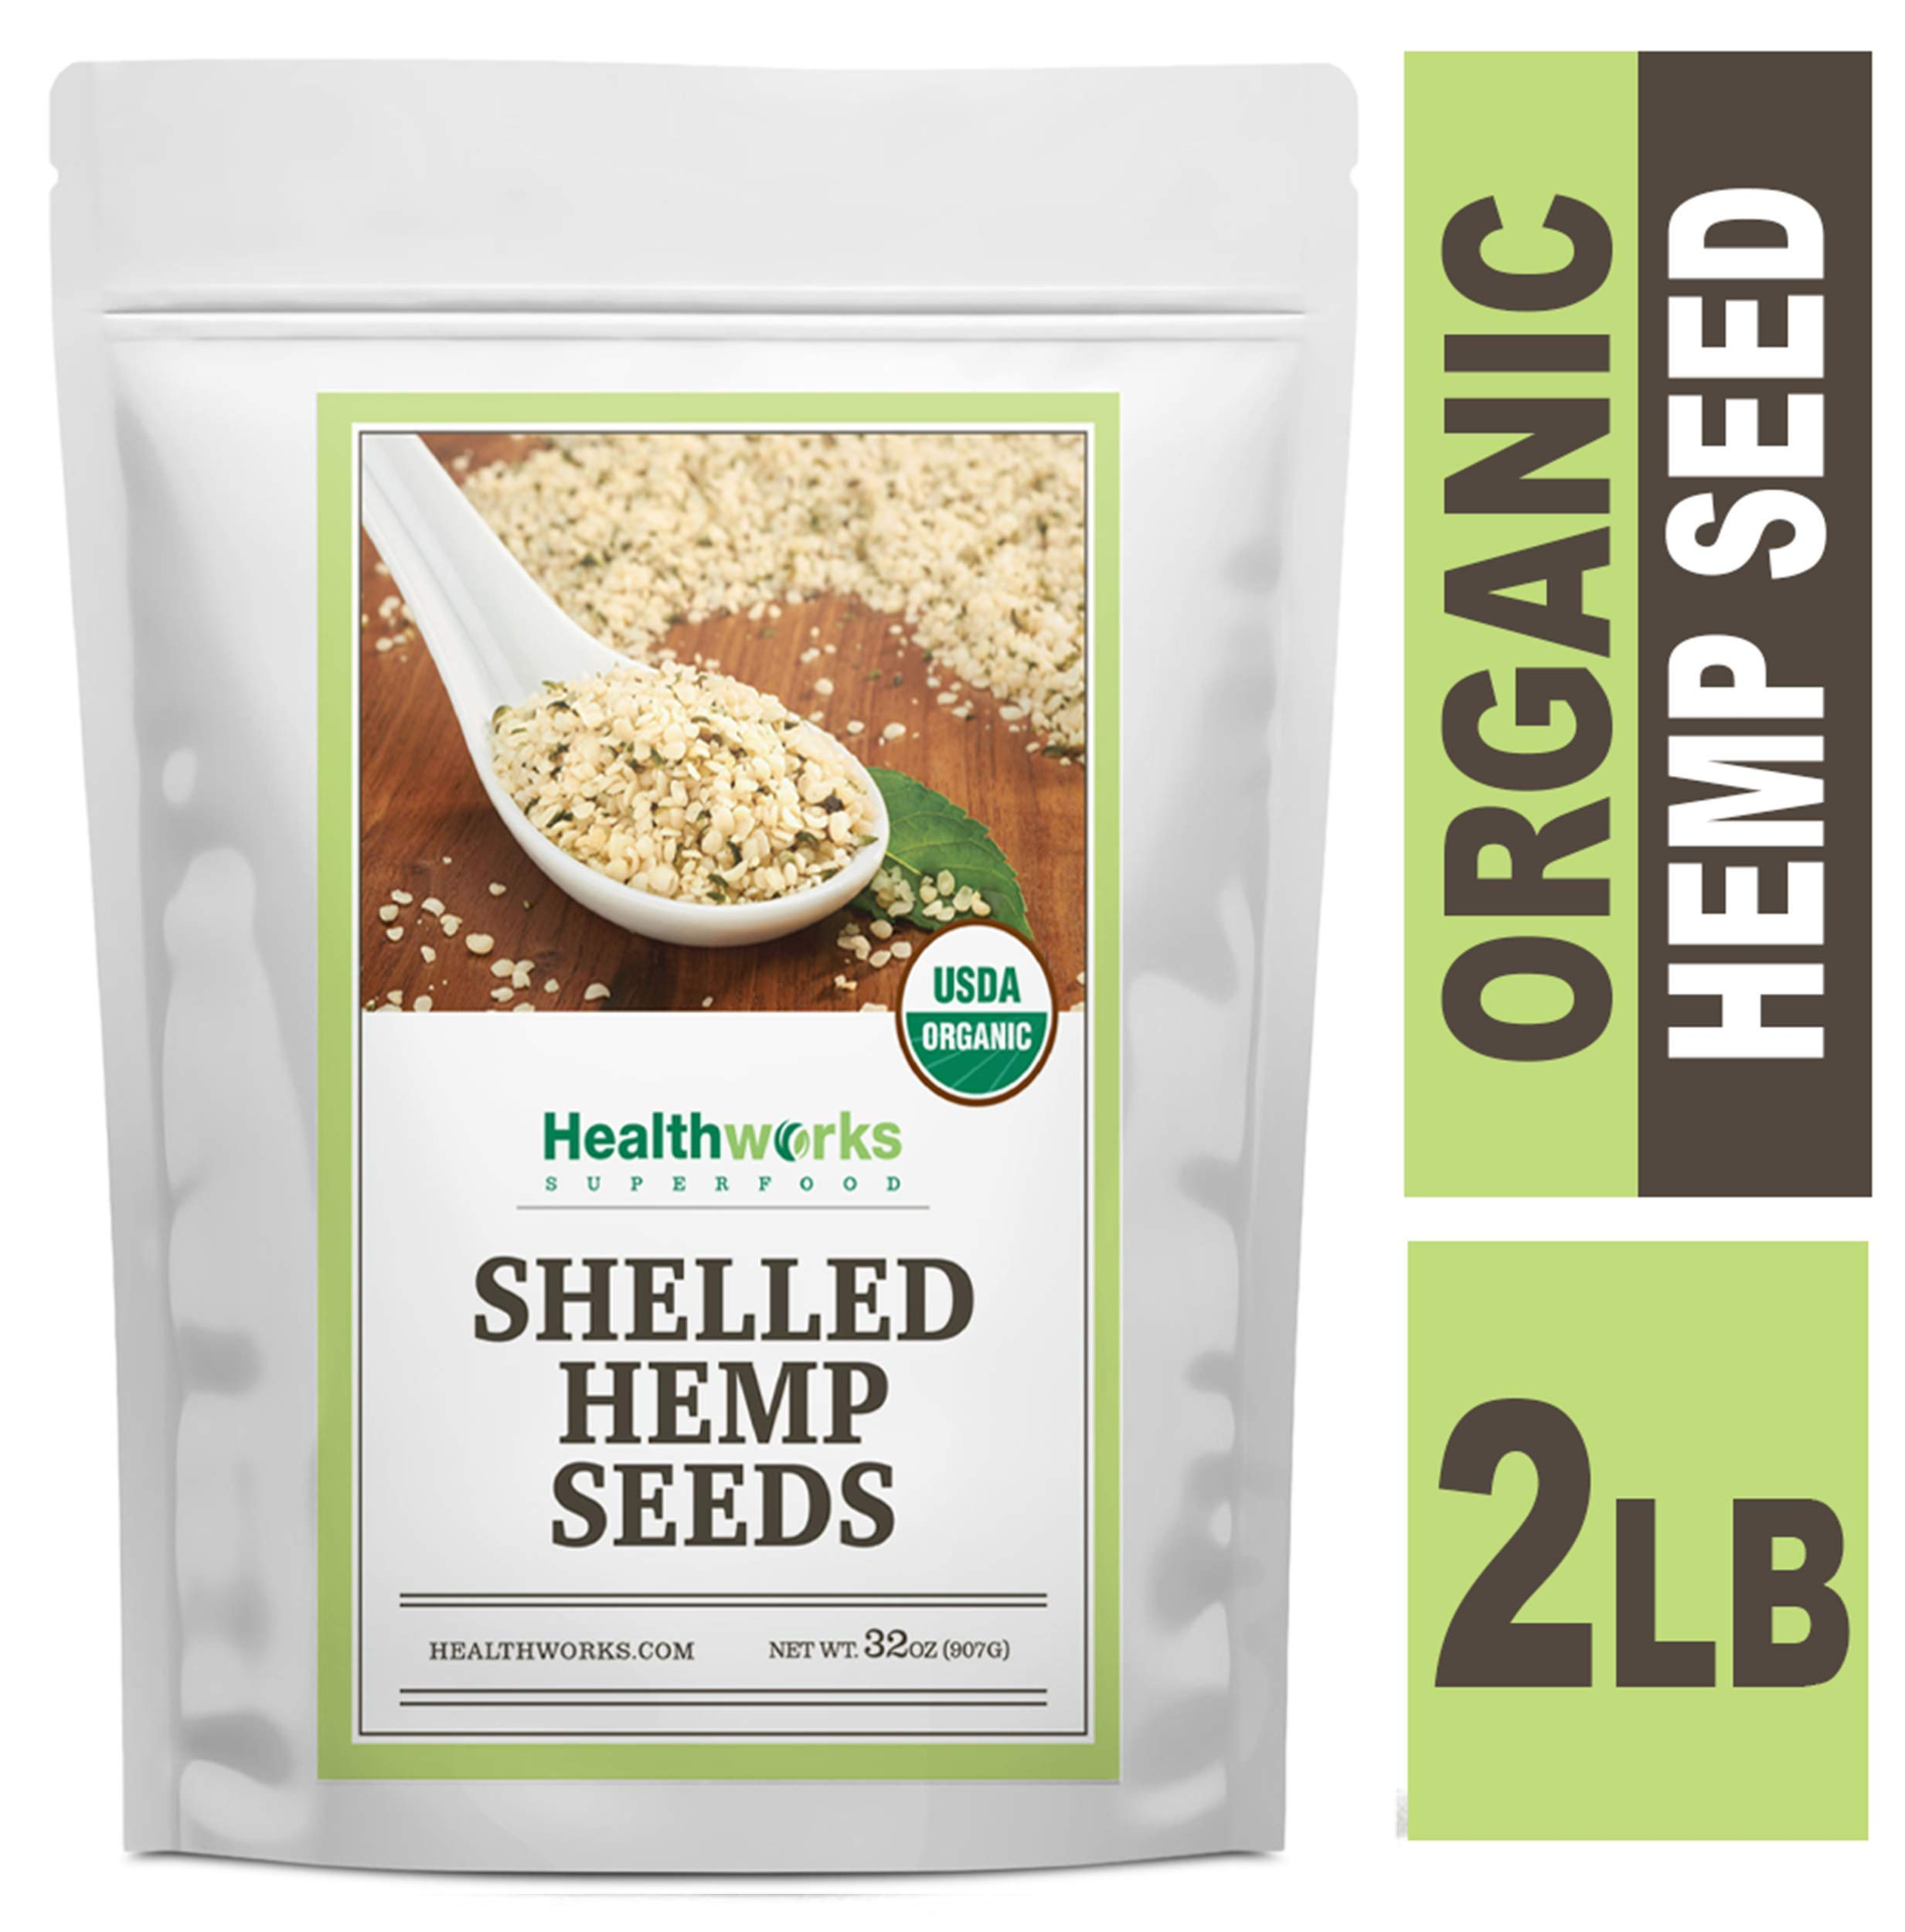 Healthworks Shelled Hemp Seeds Organic (32 Ounces / 2 Pounds) | Premium & All-Natural | Canadian or European Sourced | Contains Omega 3 & 6, Fiber and Protein by Healthworks